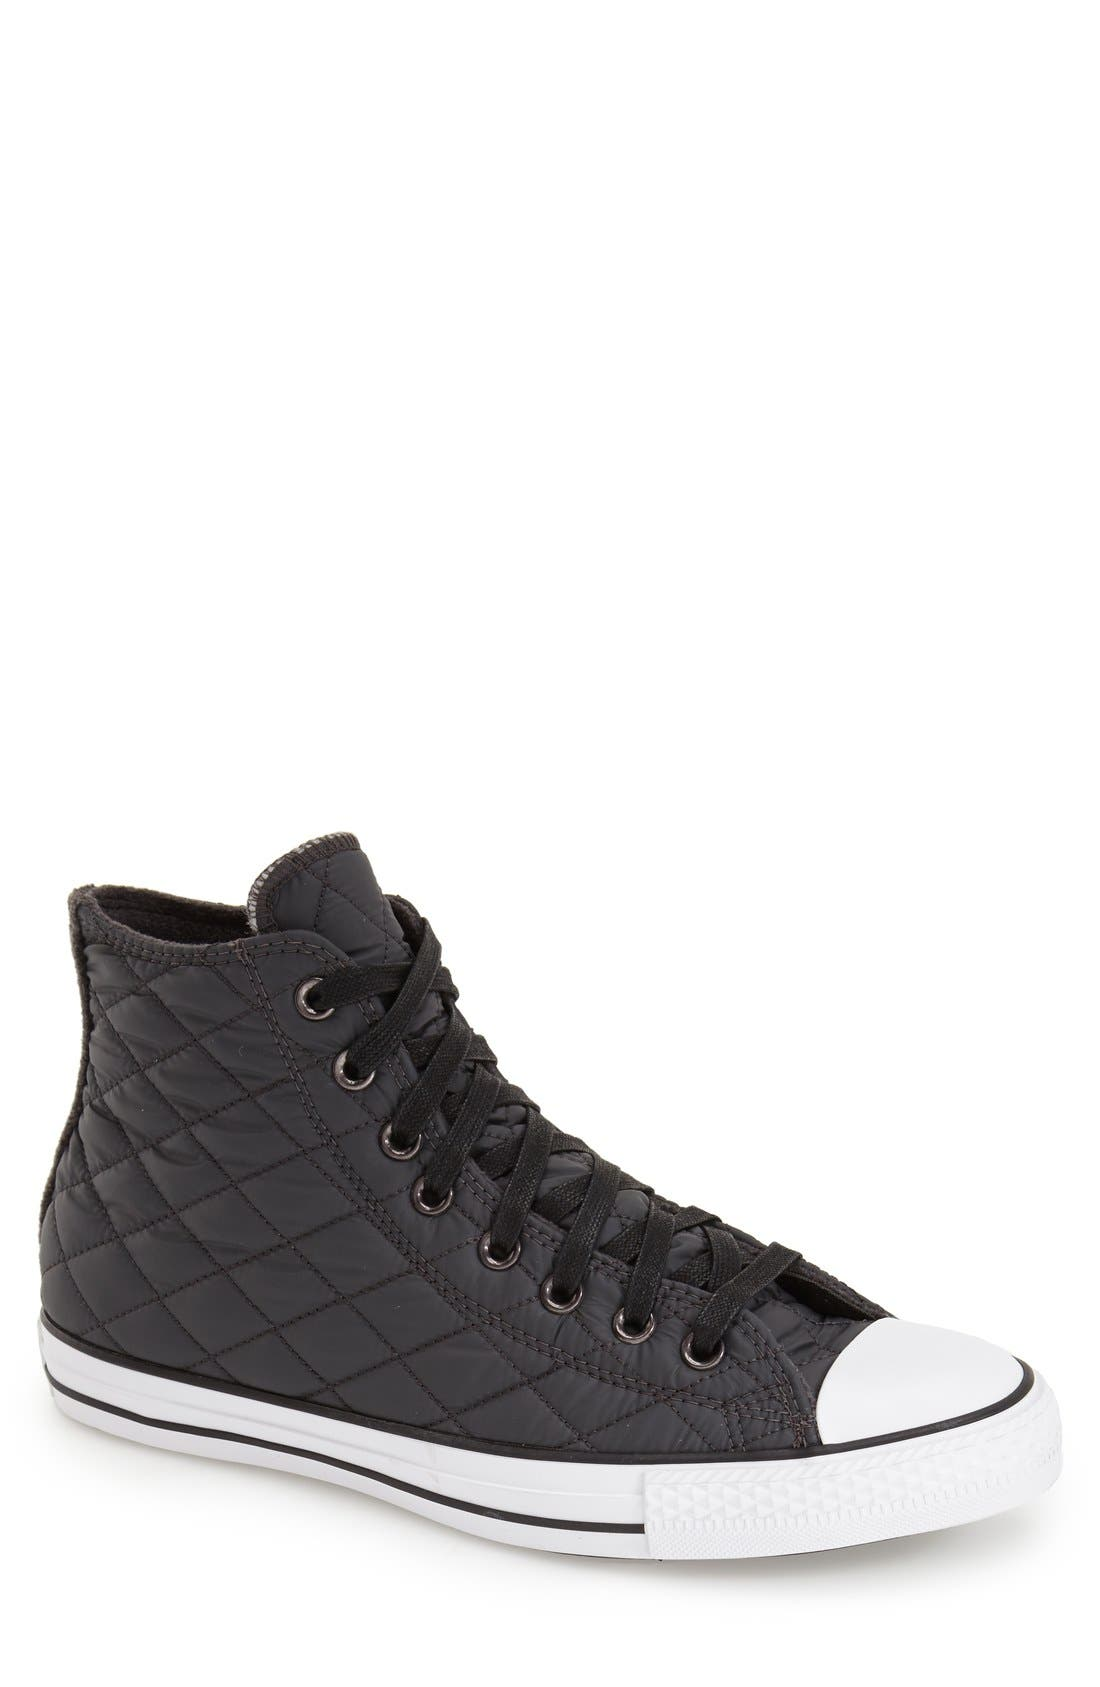 CONVERSE,                             Chuck Taylor<sup>®</sup> All Star<sup>®</sup> Quilted High Top Sneaker,                             Main thumbnail 1, color,                             020